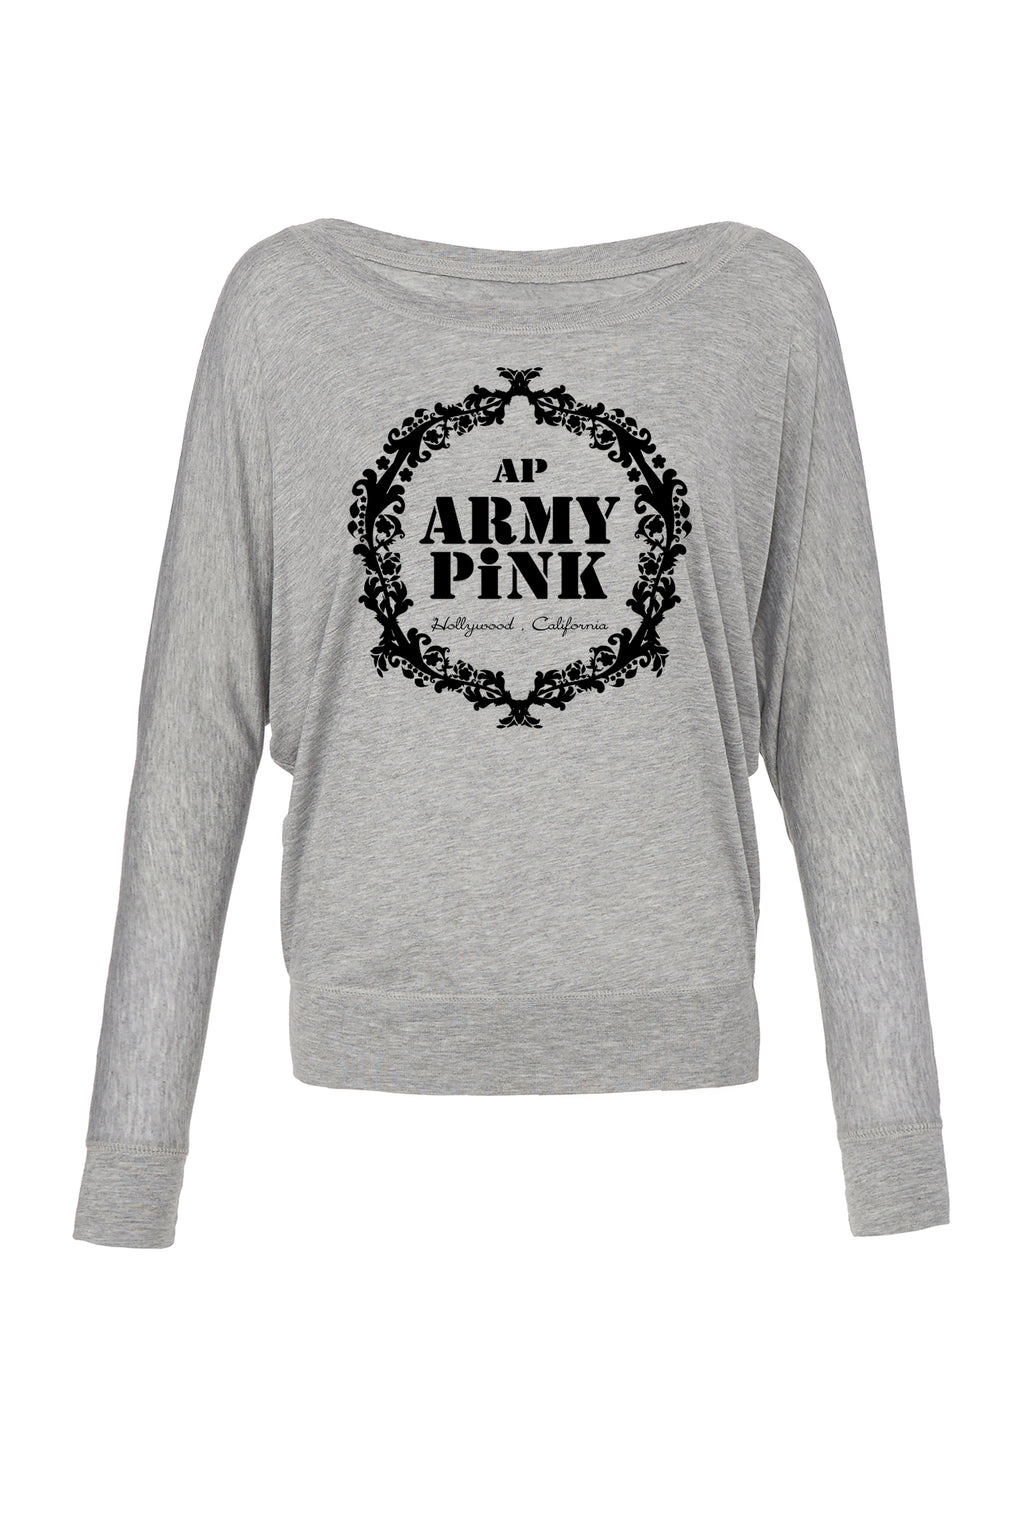 Athletic Heather Graphic Long Sleeve: Black Army Pink Wreath for 42.00 at ARMY PINK